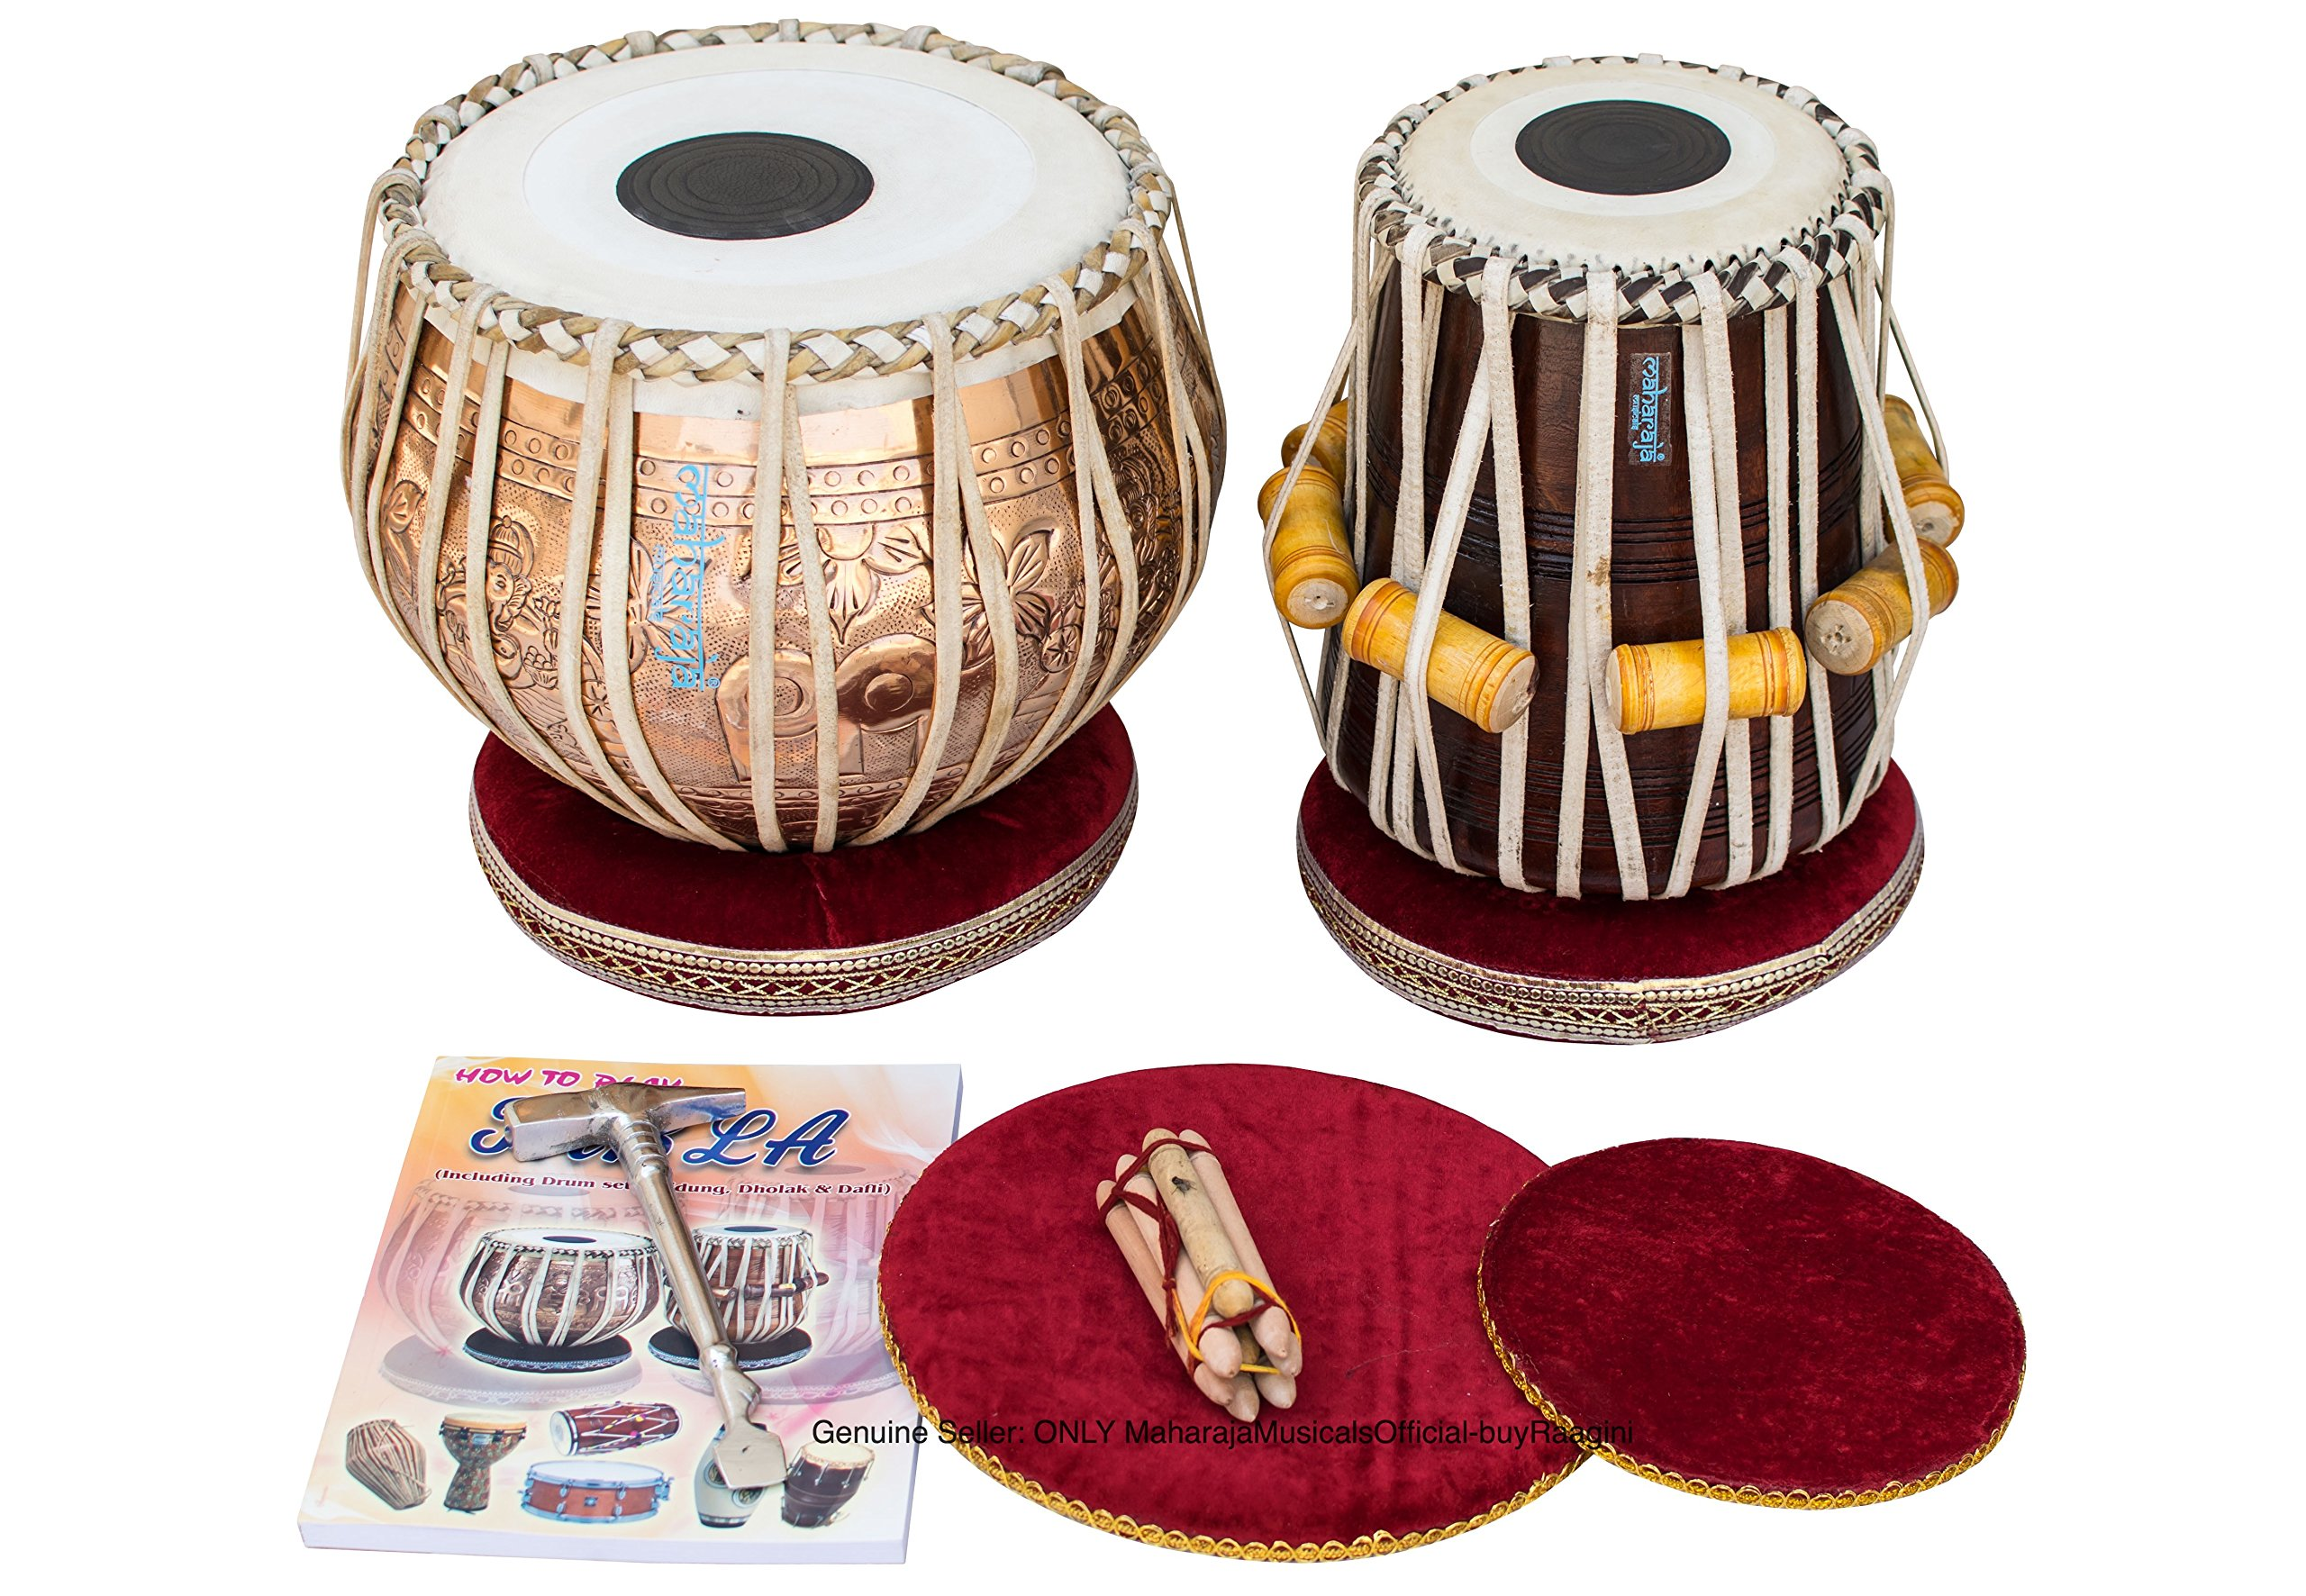 Maharaja Musicals Tabla Set, Professional, 3.5 Kg Copper Bayan - Flower Design, Sheesham Dayan - C Sharp, Padded Bag, Hammer, Cushions, Cover, Tabla Hand Drums Indian (PDI-BHJ) by Maharaja Musicals